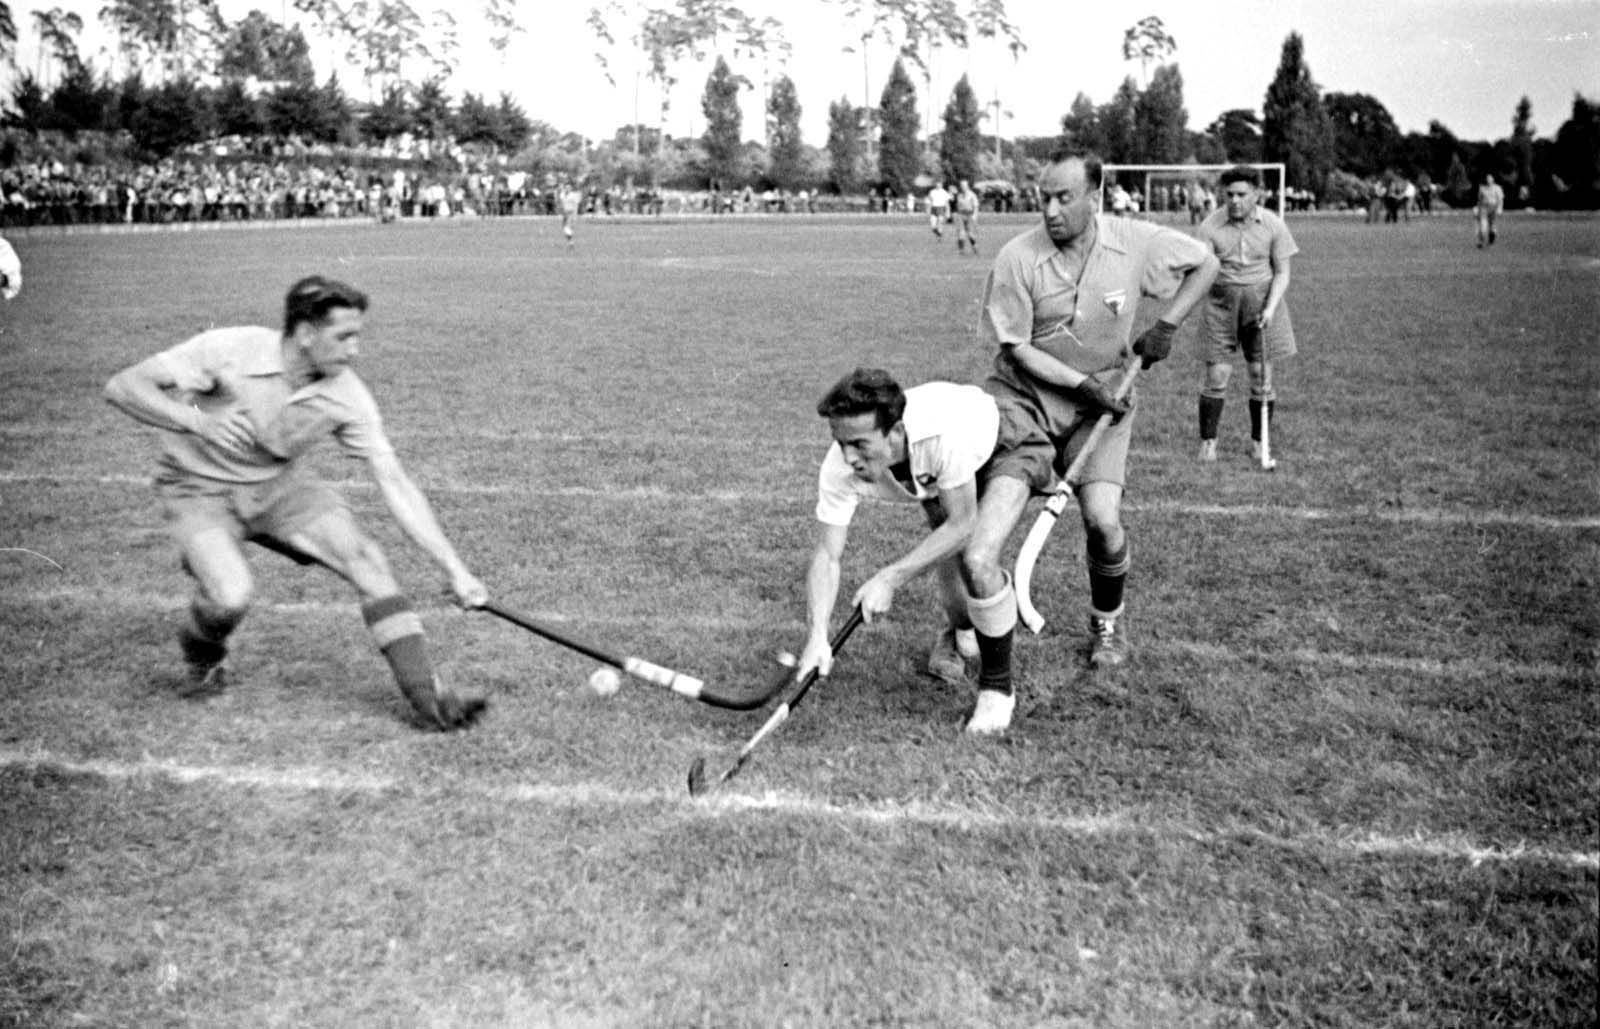 """""""A field hockey game during the international """"Bar-Kochba"""" sports games with the participation of the team """"Hakoach Vienna"""". The games were held in Grunewald, Berlin, Germany 1937"""""""